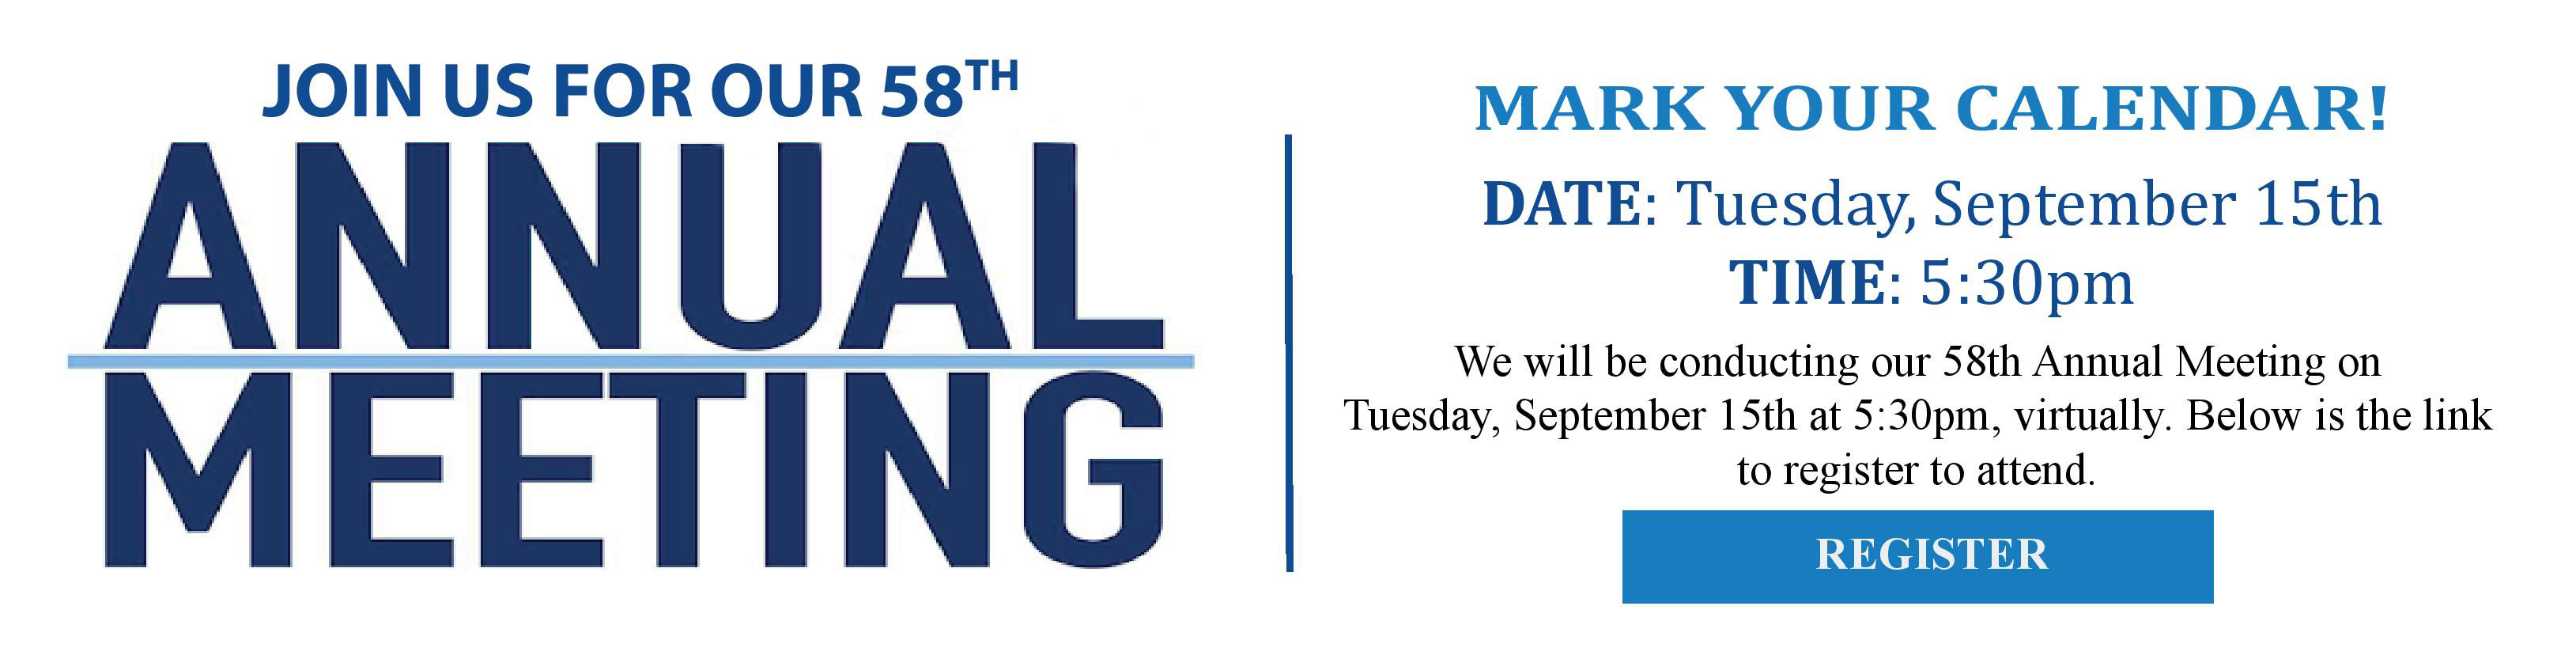 Join us for our virtual 2020 Annula meeting on Tuesday, September 15, 2020 at 5:30pm